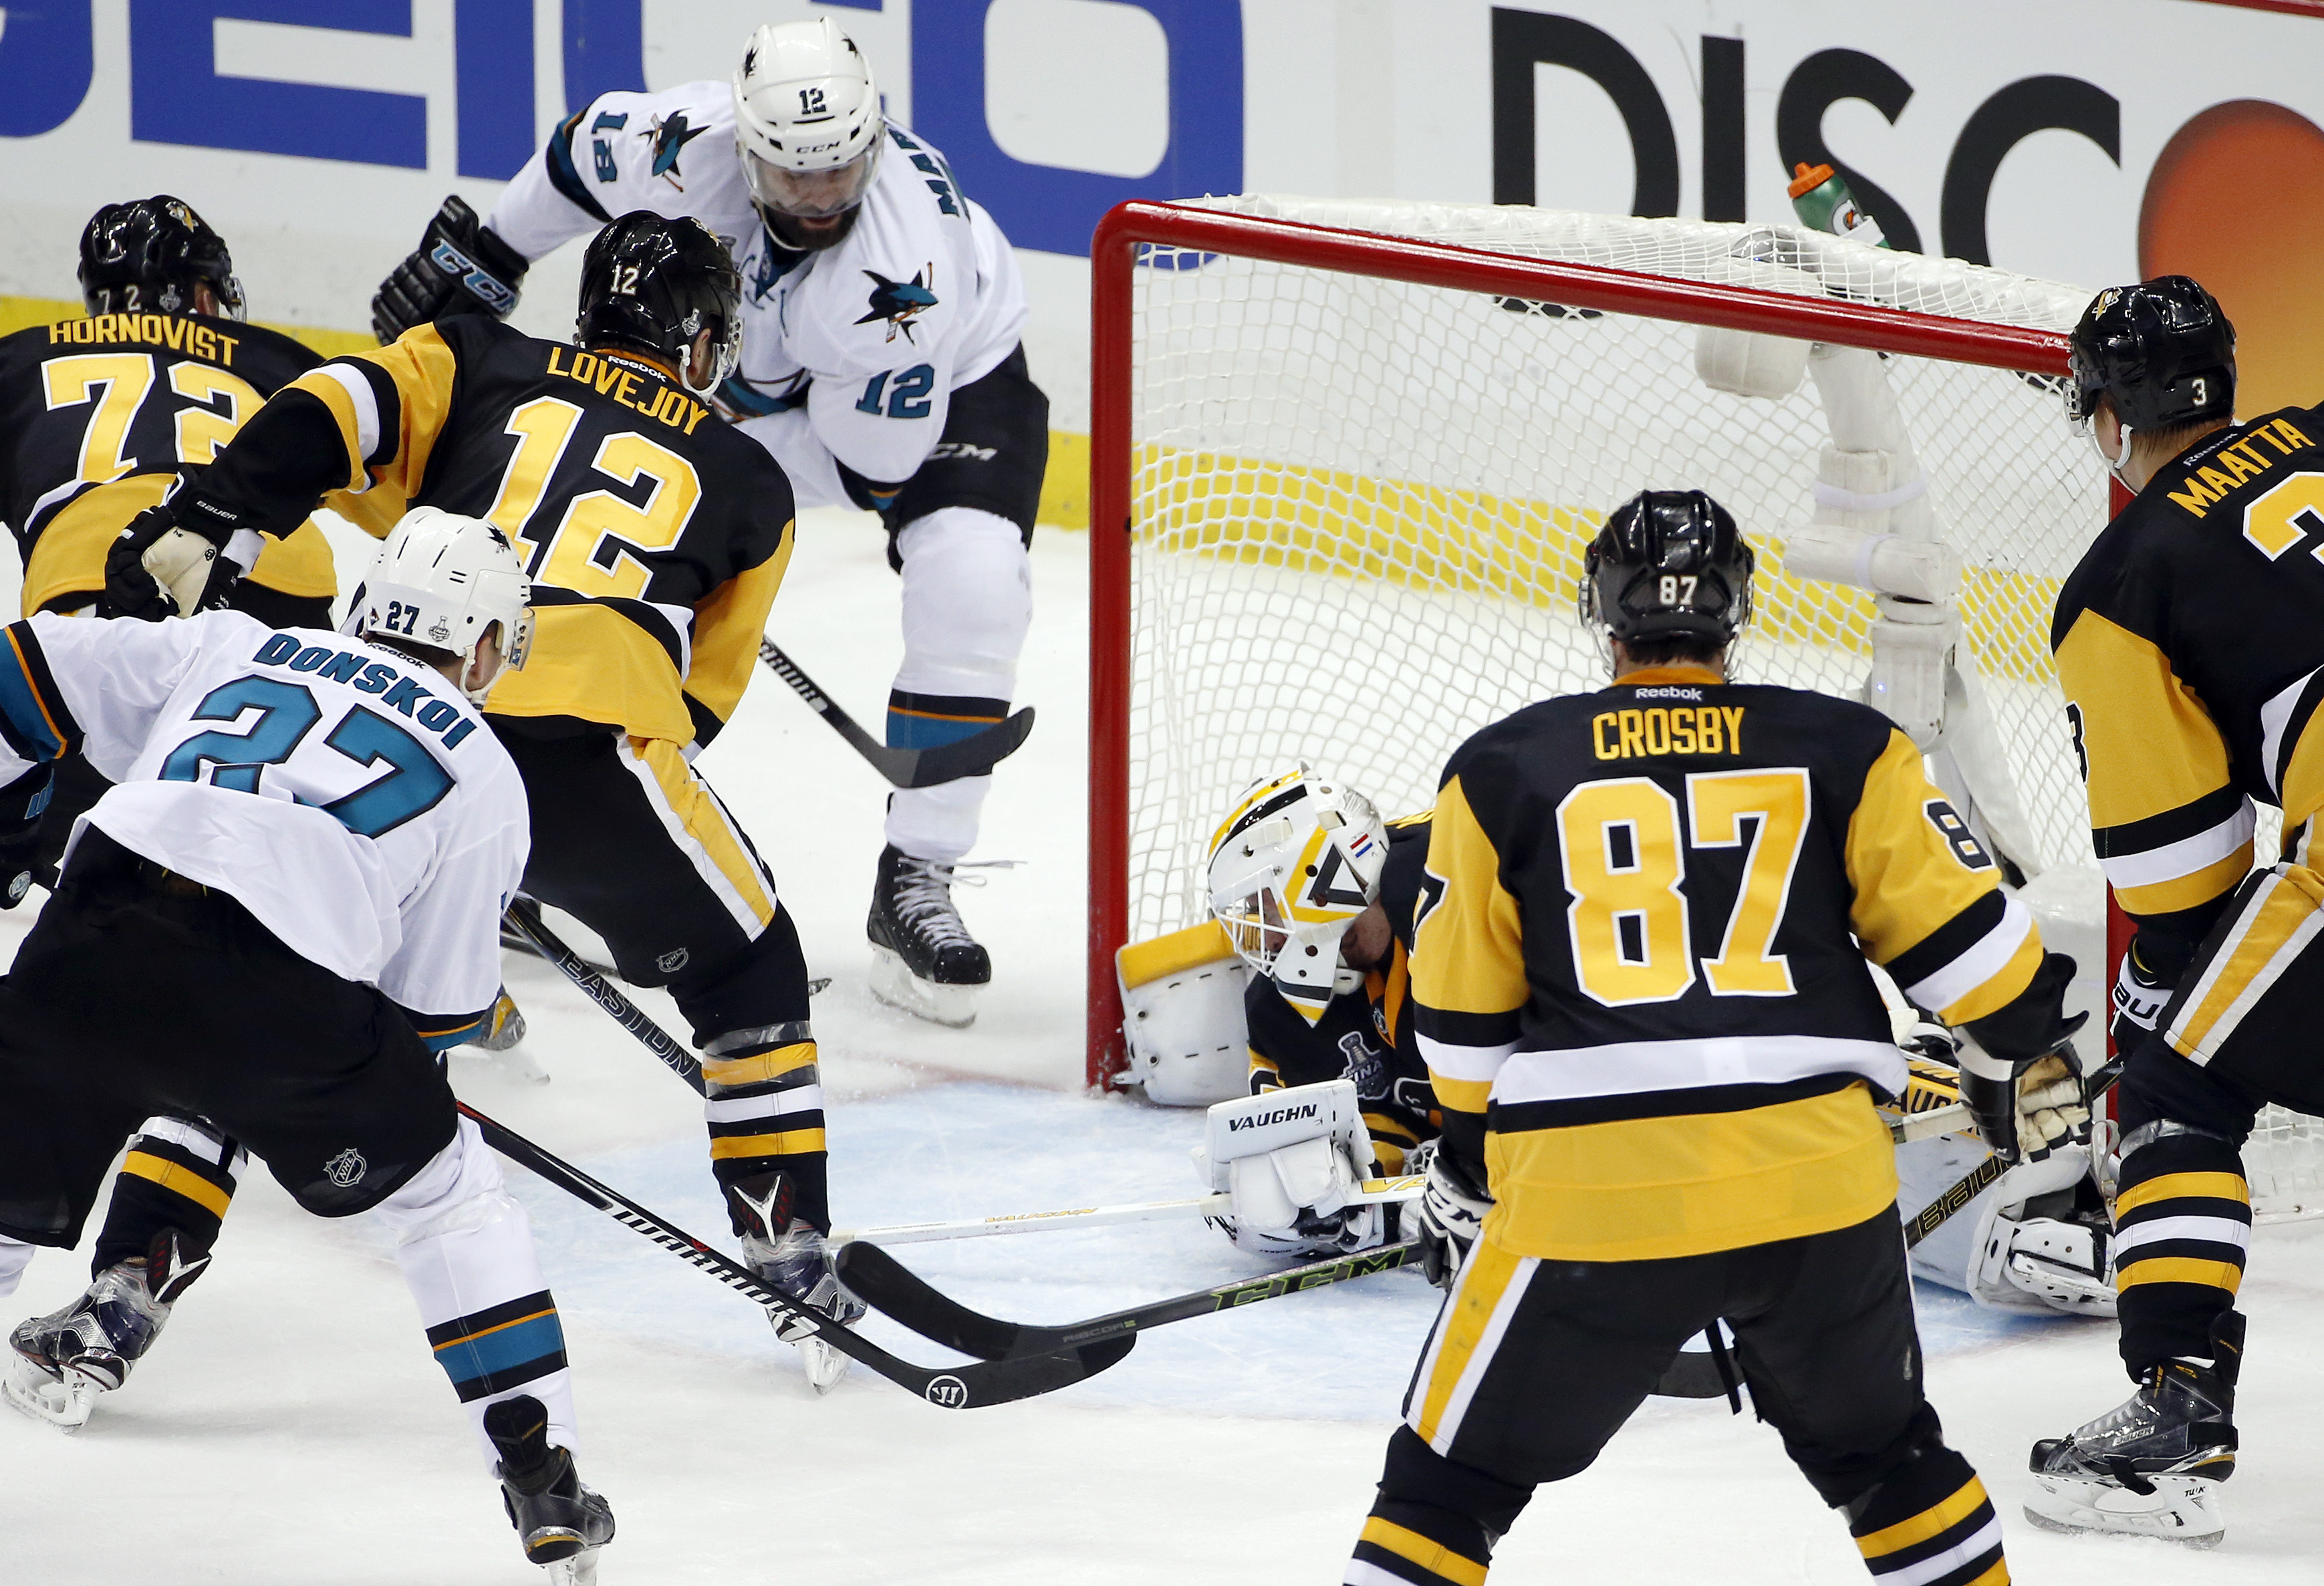 San Jose Sharks' Patrick Marleau (12) scores past Pittsburgh Penguins goalie Matt Murray (30) during the second period in Game 1 of the Stanley Cup final series Monday, May 30, 2016, in Pittsburgh. (AP Photo/Gene J. Puskar)